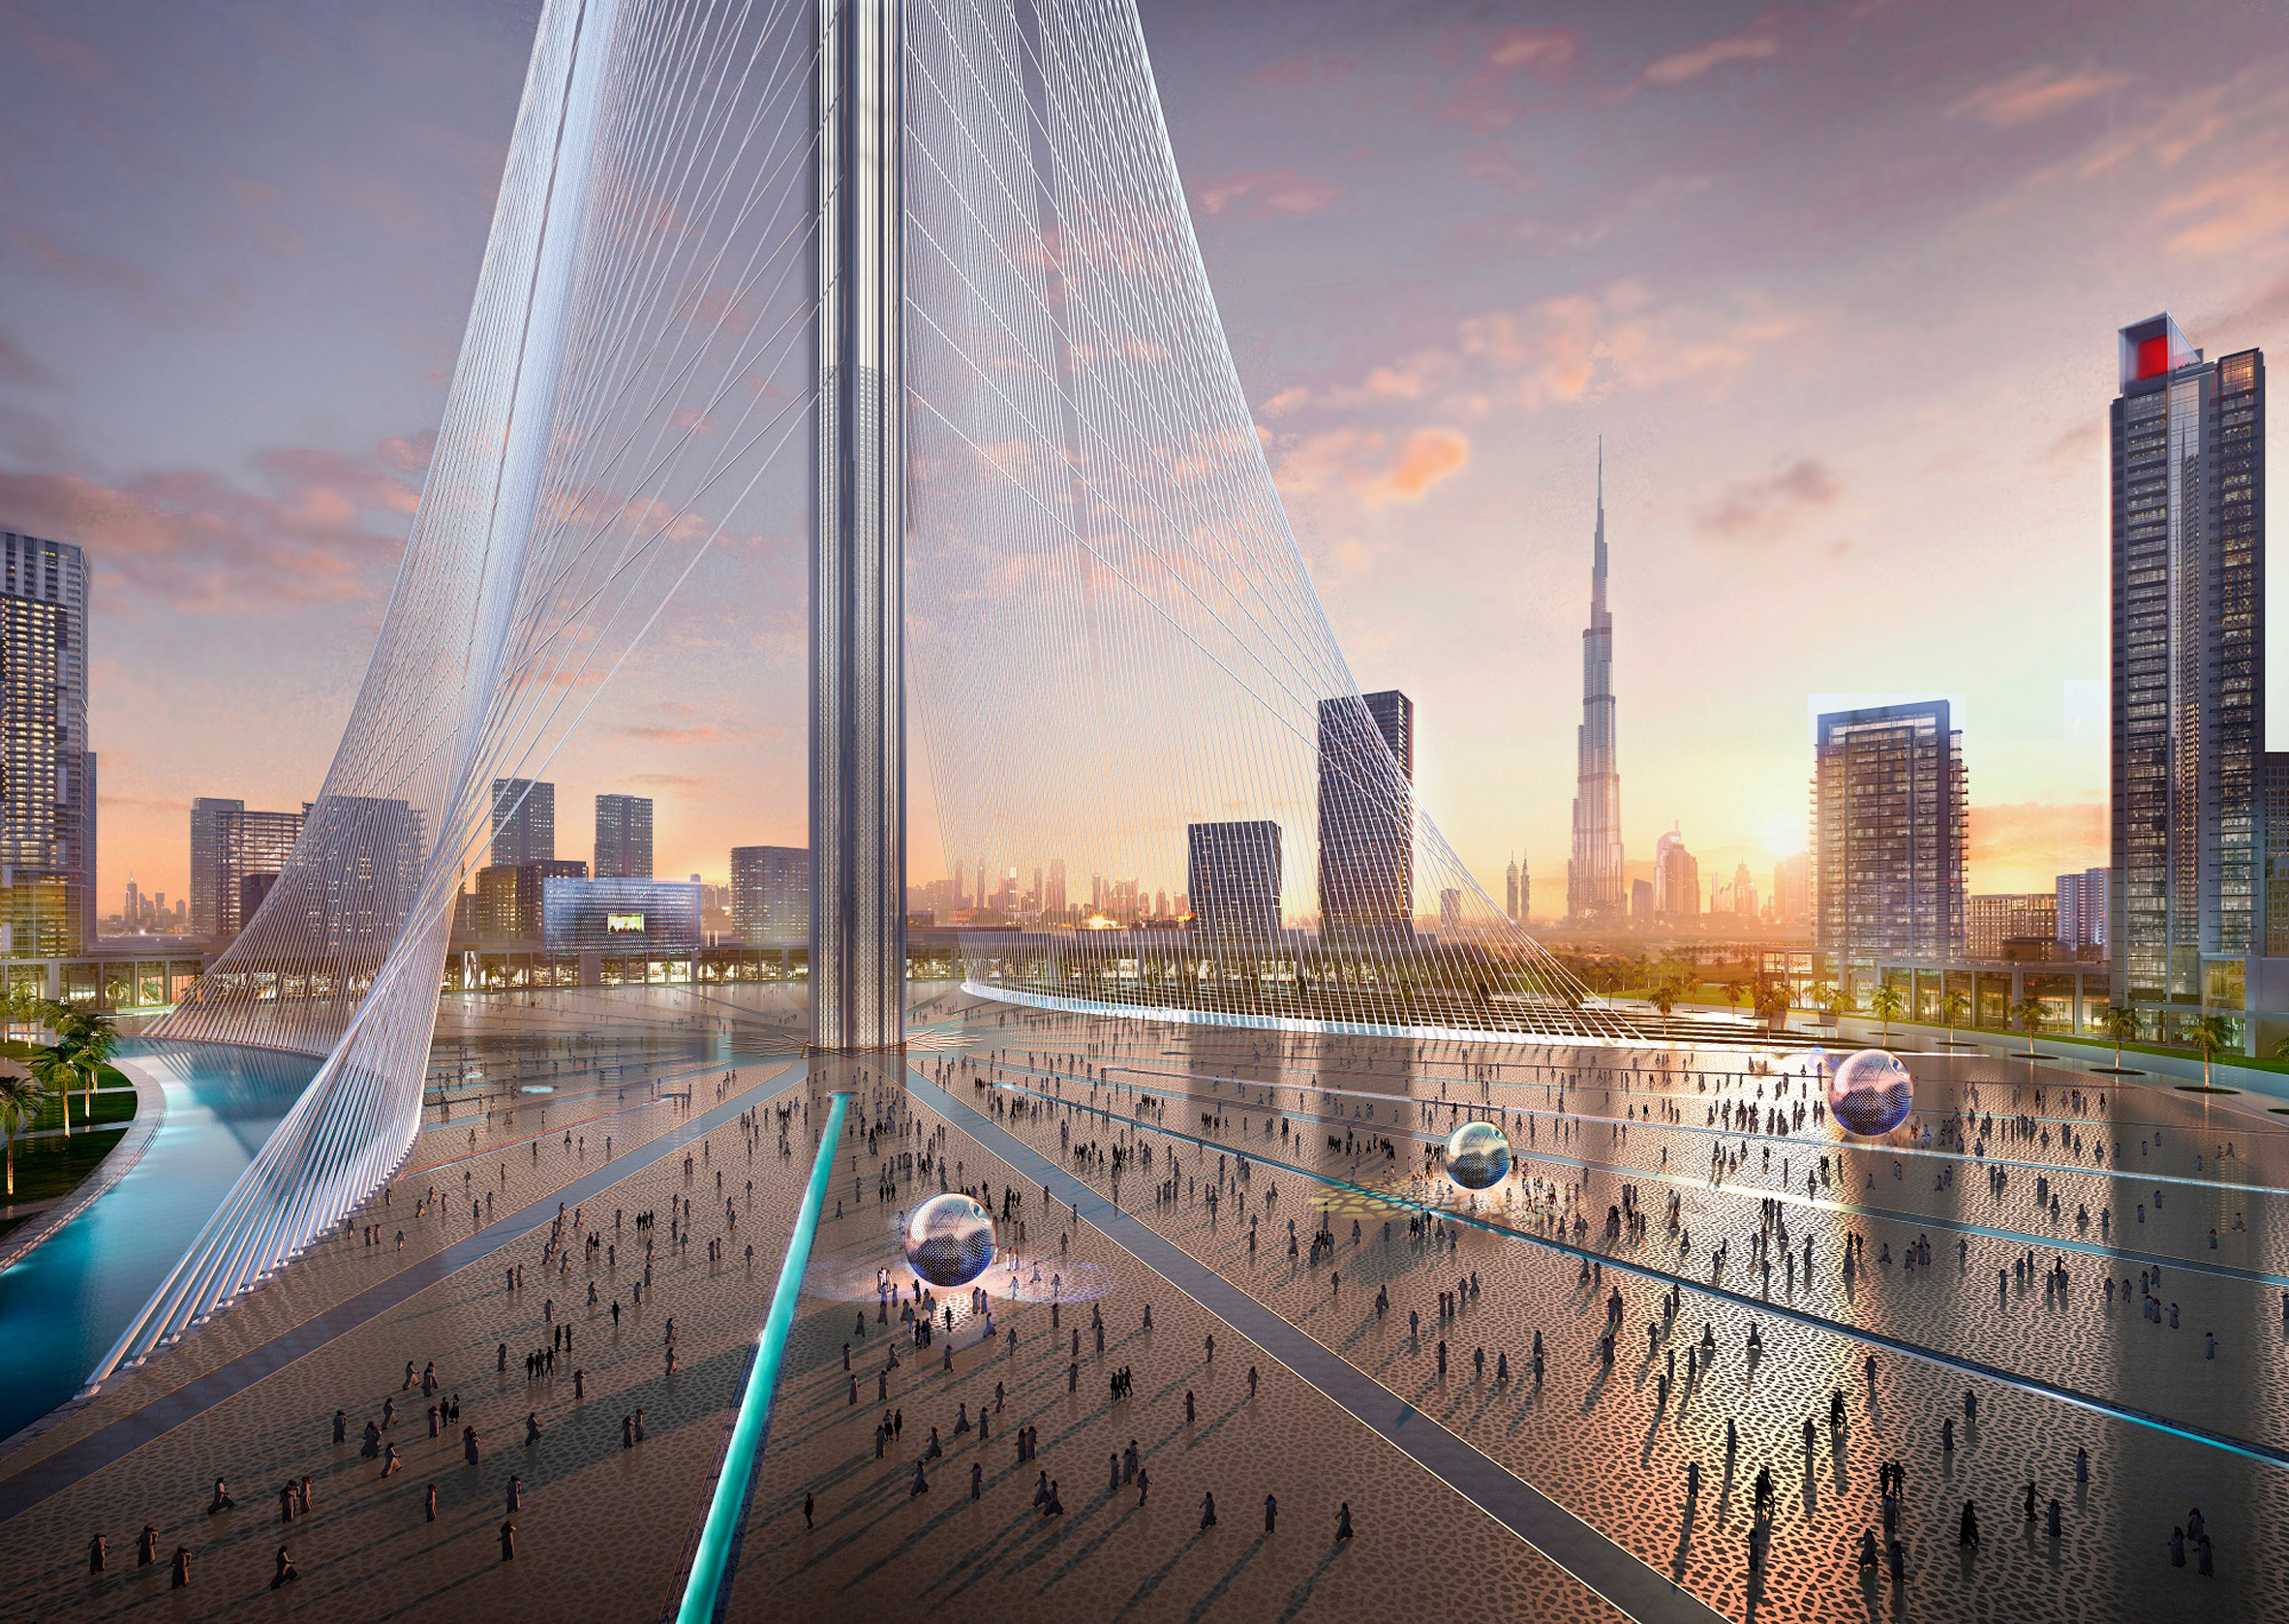 dubai-creek-harbour-worlds-tallest-tower-architecture-new-santiago-calatrava-united-arab-emirates_dezeen_2364_col_1